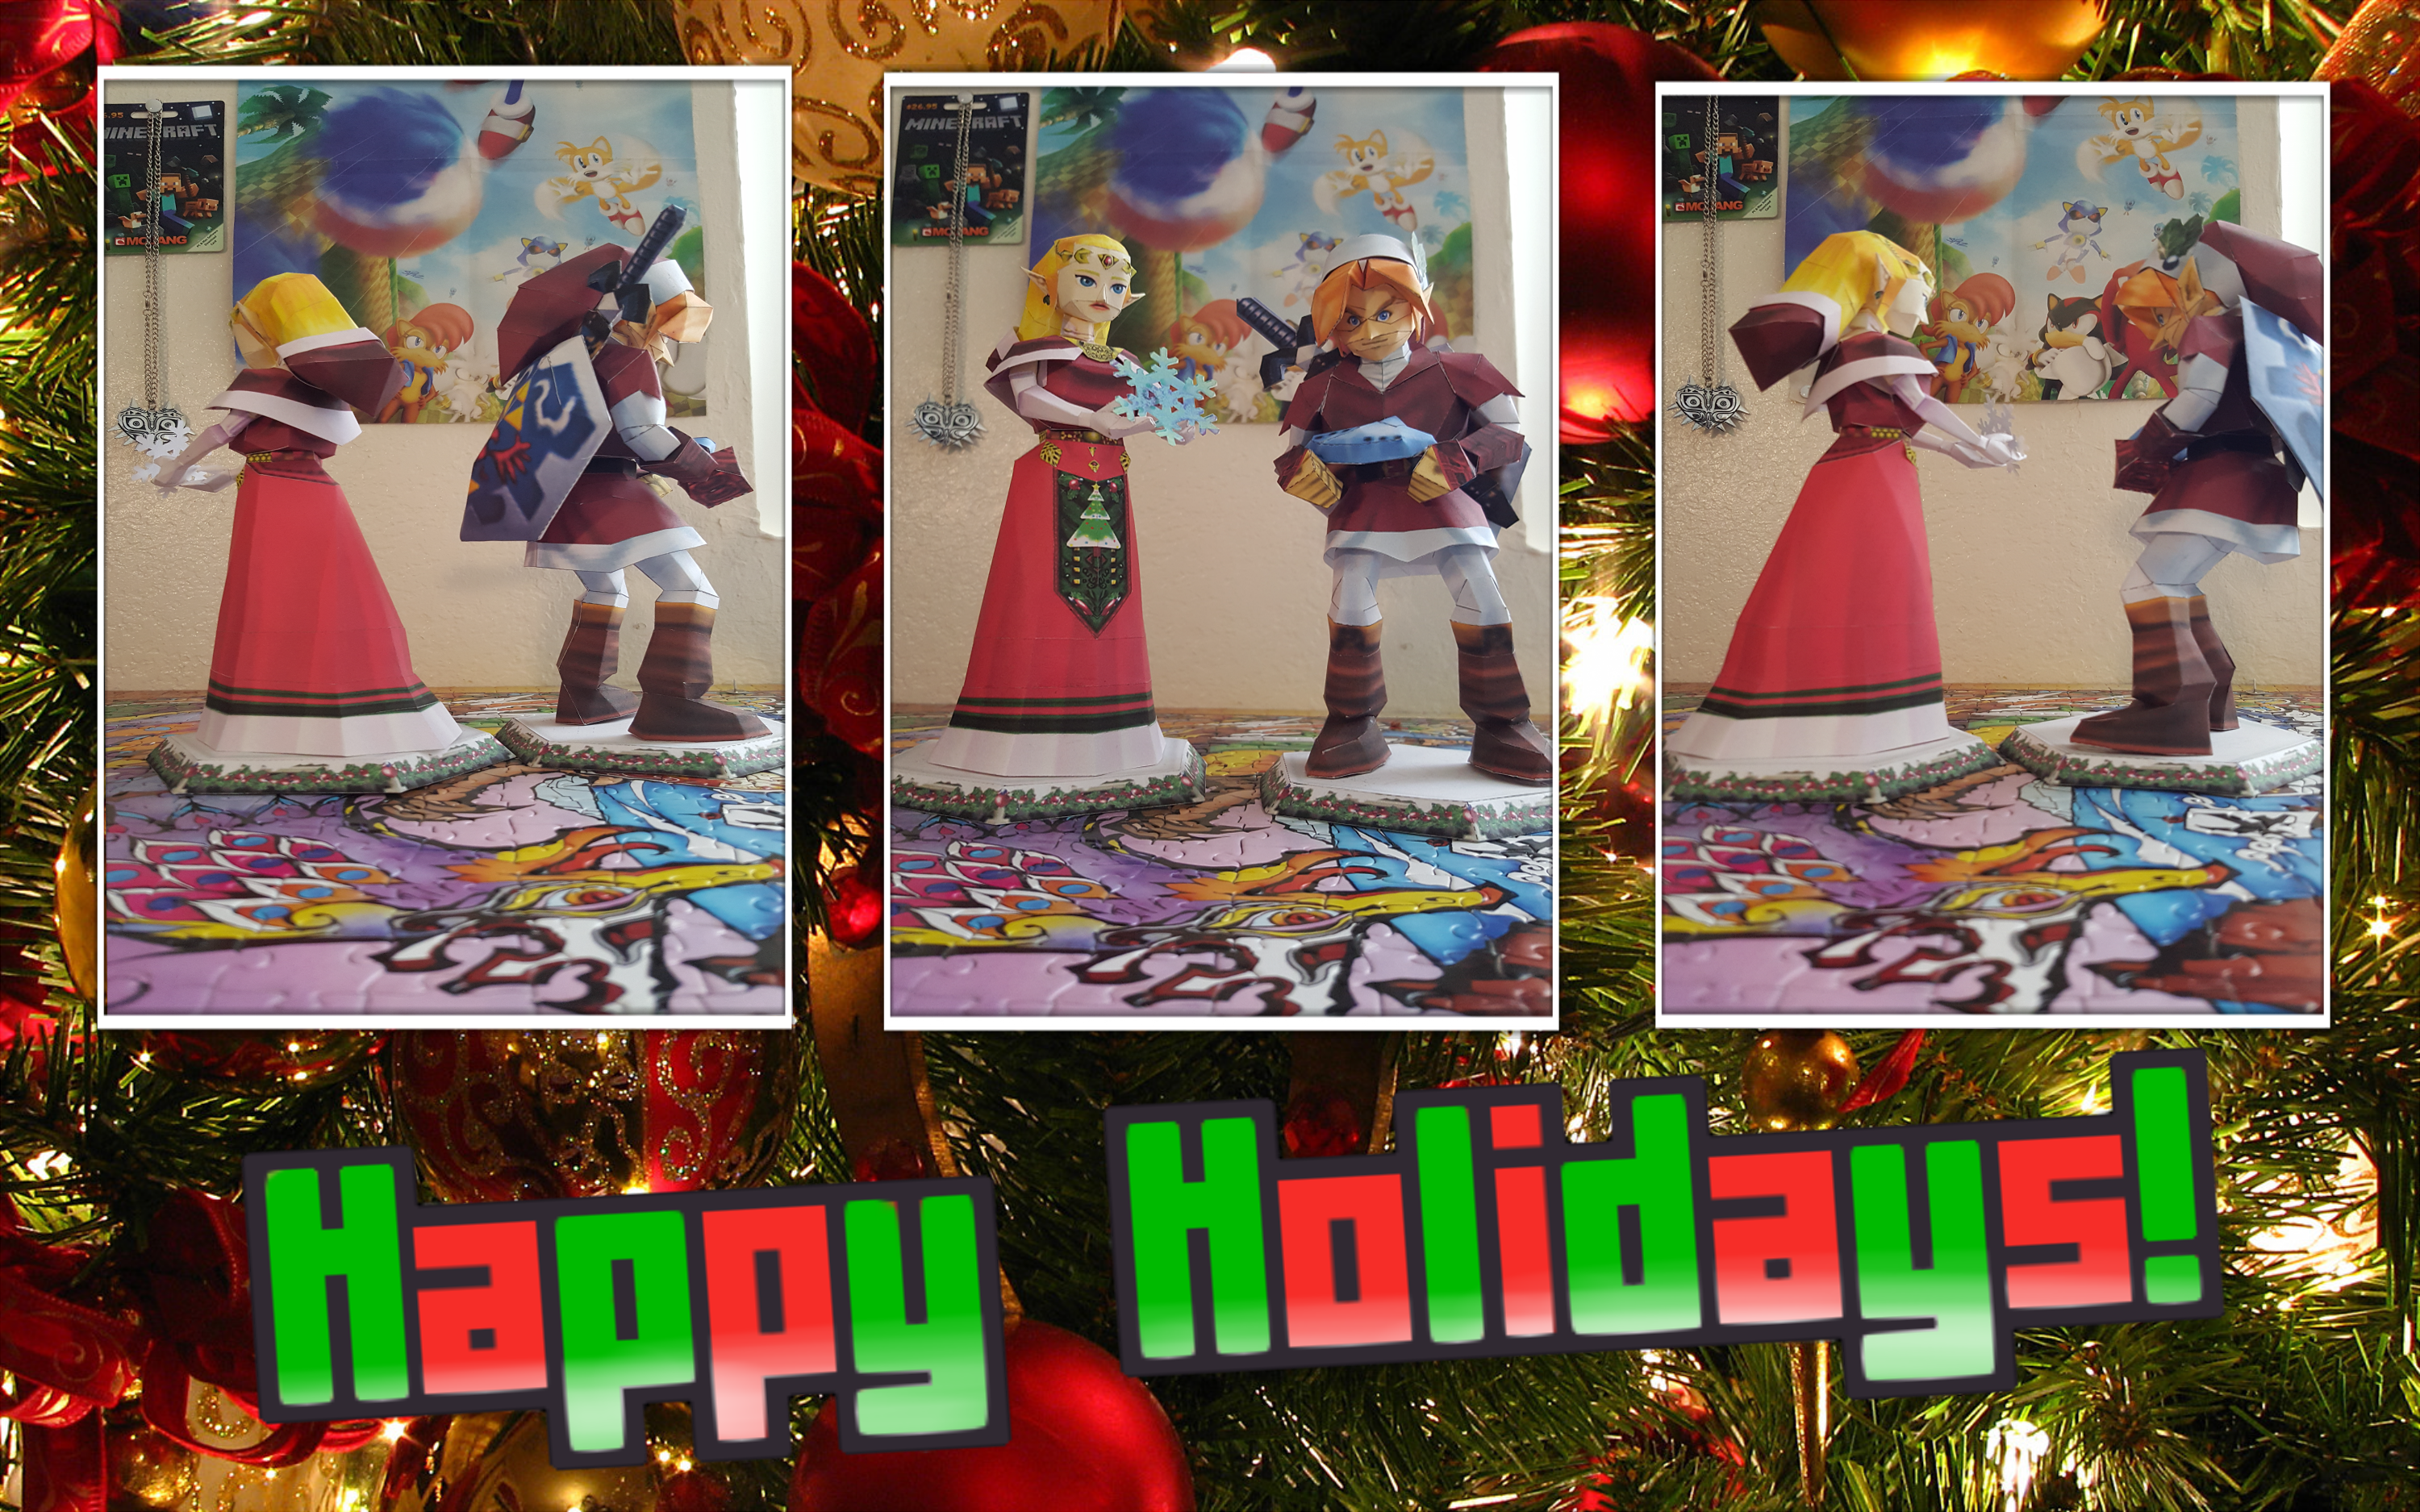 the legend of zelda papercraft holiday special by superretrobro